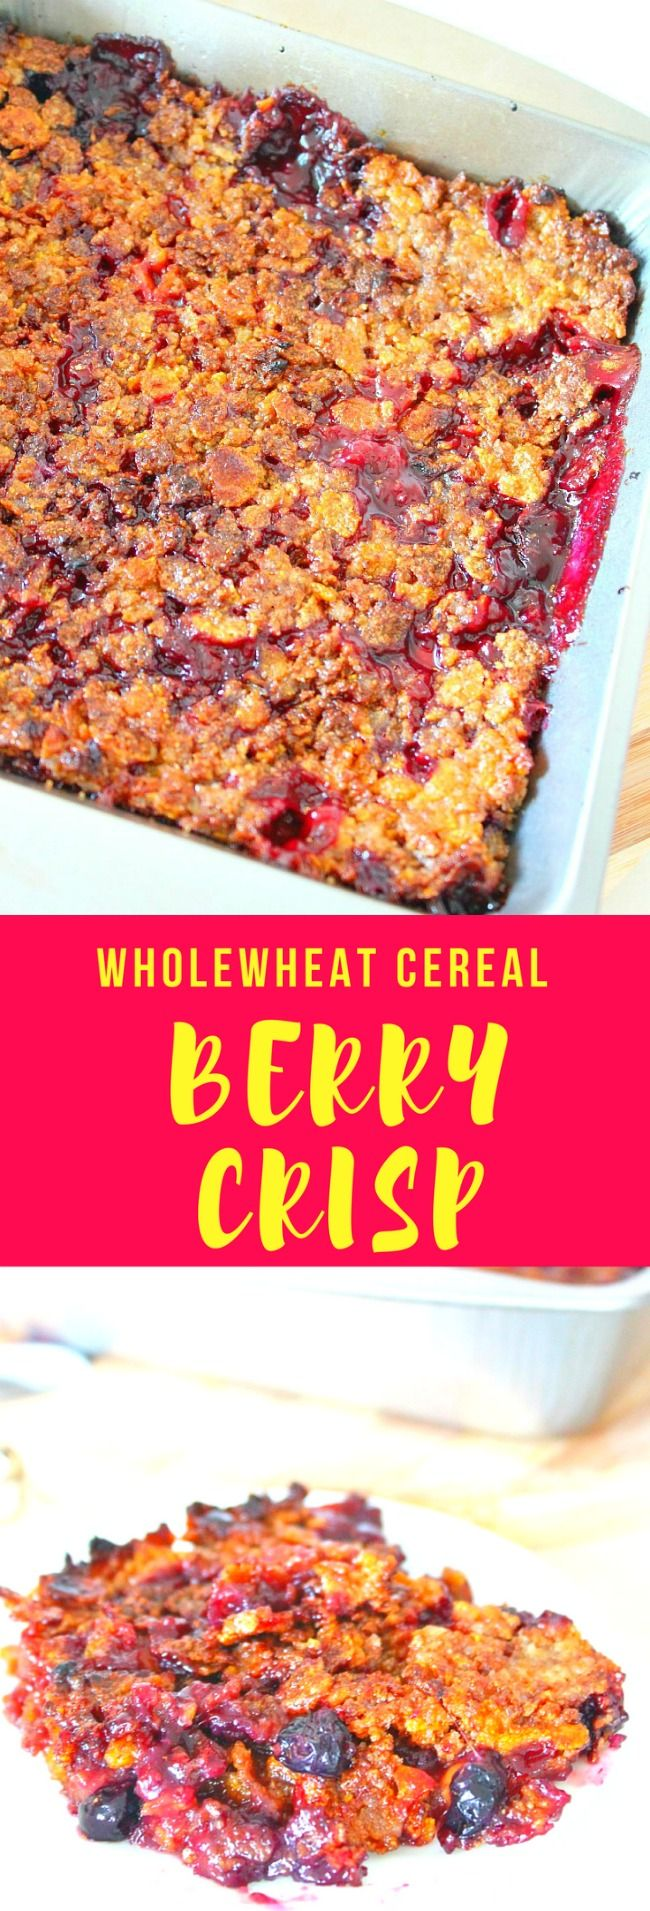 MIXED BERRY CRISP RECIPE - This berry crisp is a fun way to feature your favorite berries this season. Get your sweet tooth fixed with this mixed berry crisp that's not only delicious but easy and quick to make too.